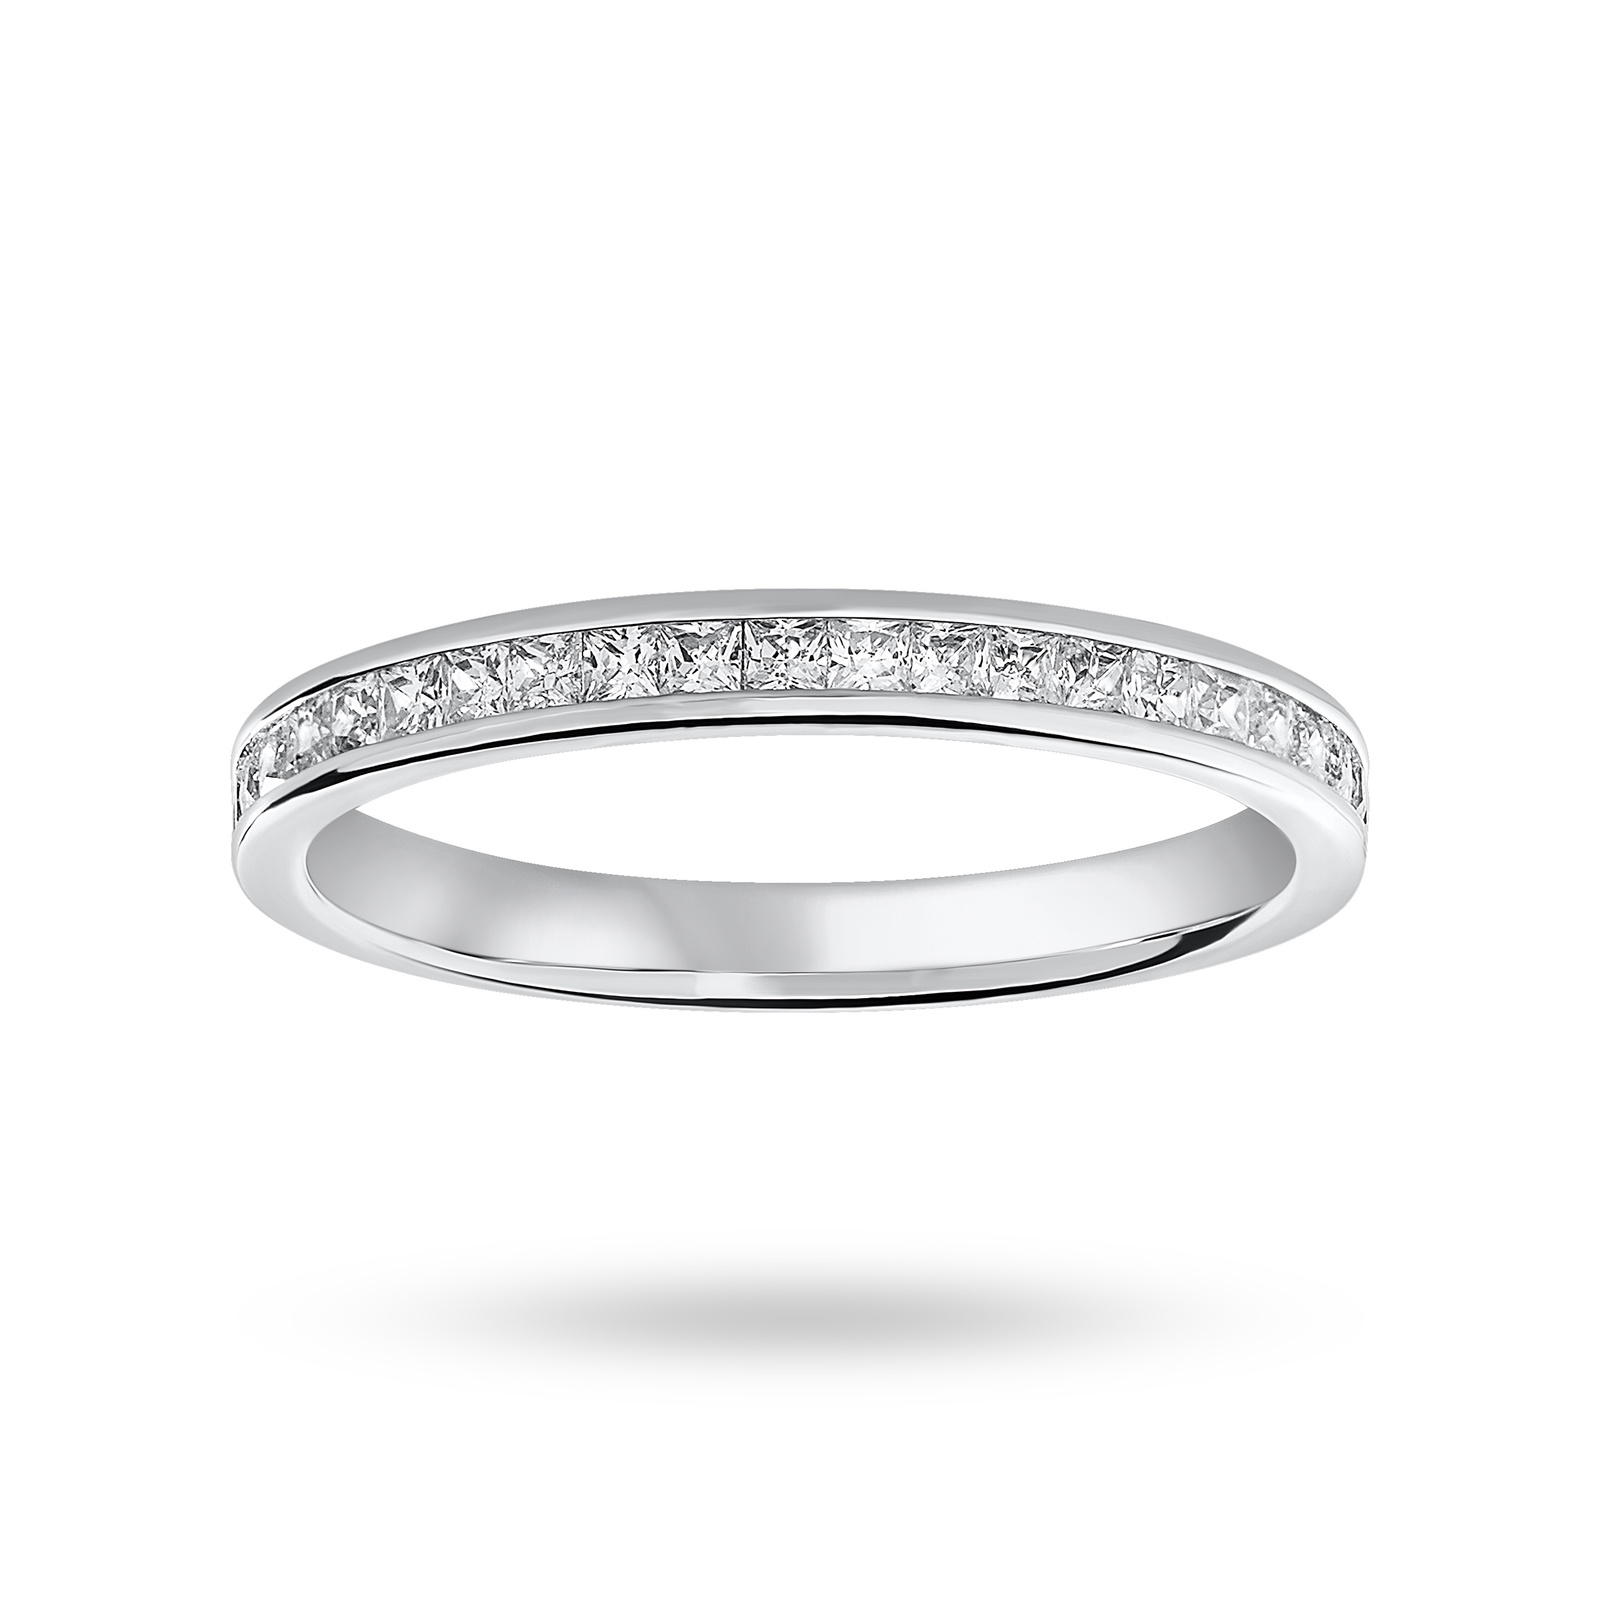 18 Carat White Gold 0.33 Carat Princess Cut Half Eternity Ring